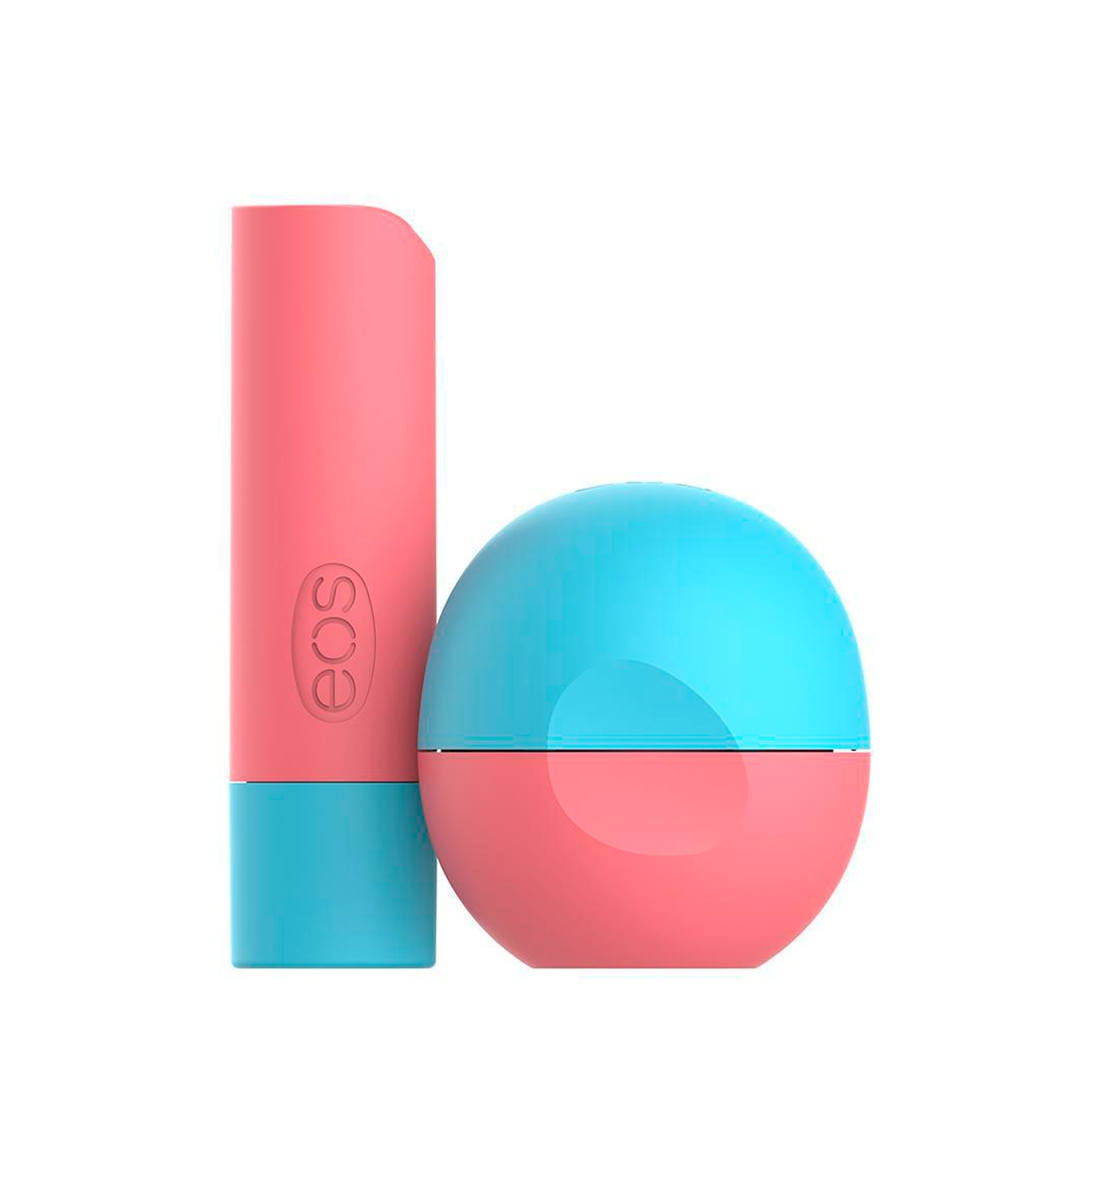 EOS LYCHEE MARTINI STICK AND SPHERE LIP BALM